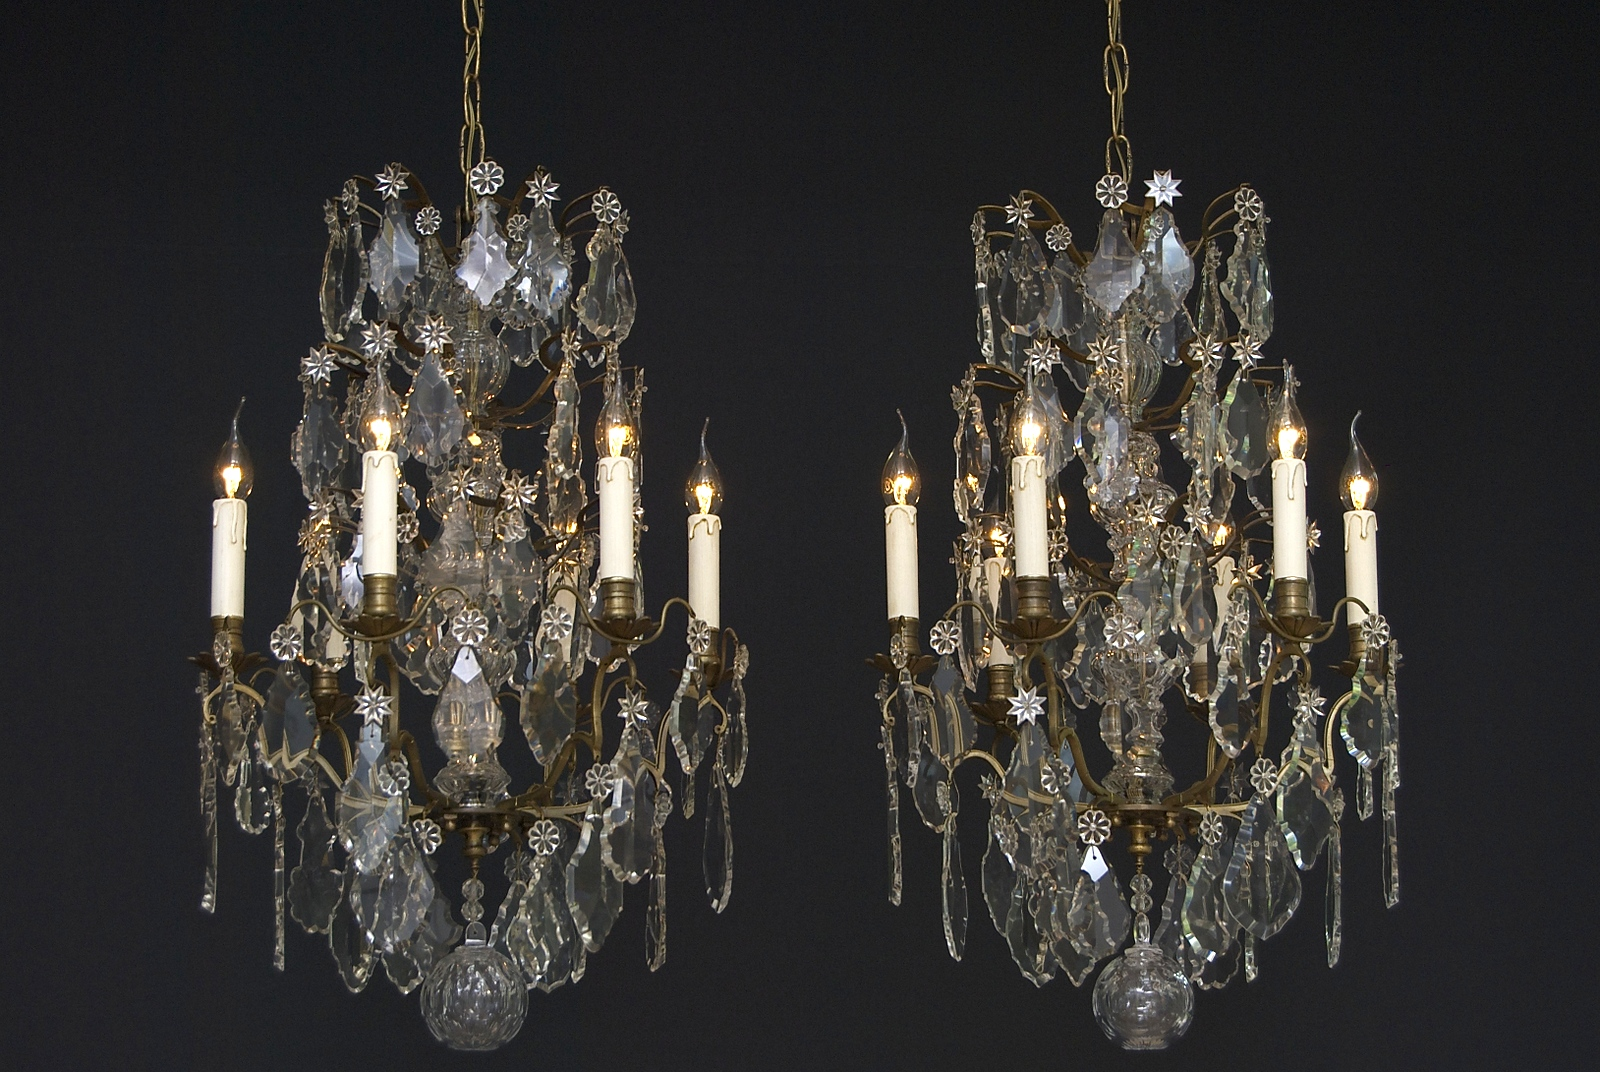 A unique pair of 2 identical French crystal chandeliers